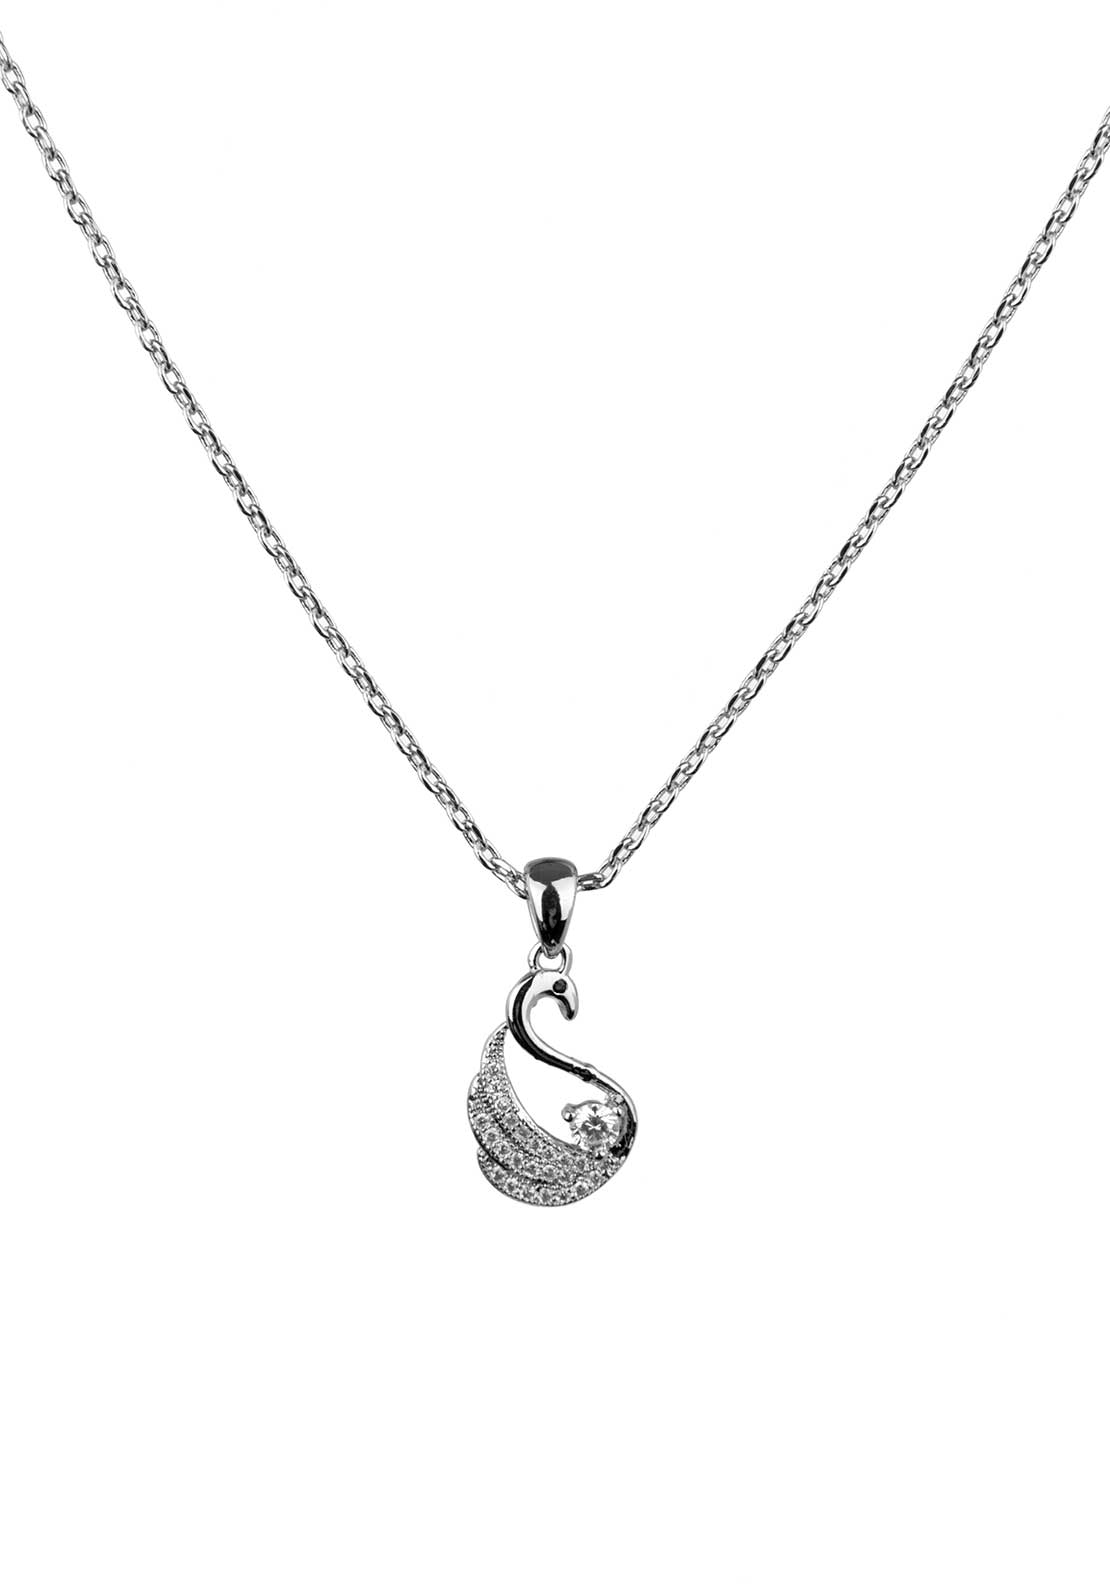 Absolute Jewellery Girls Pave Studded Swan Pendant Necklace, Silver